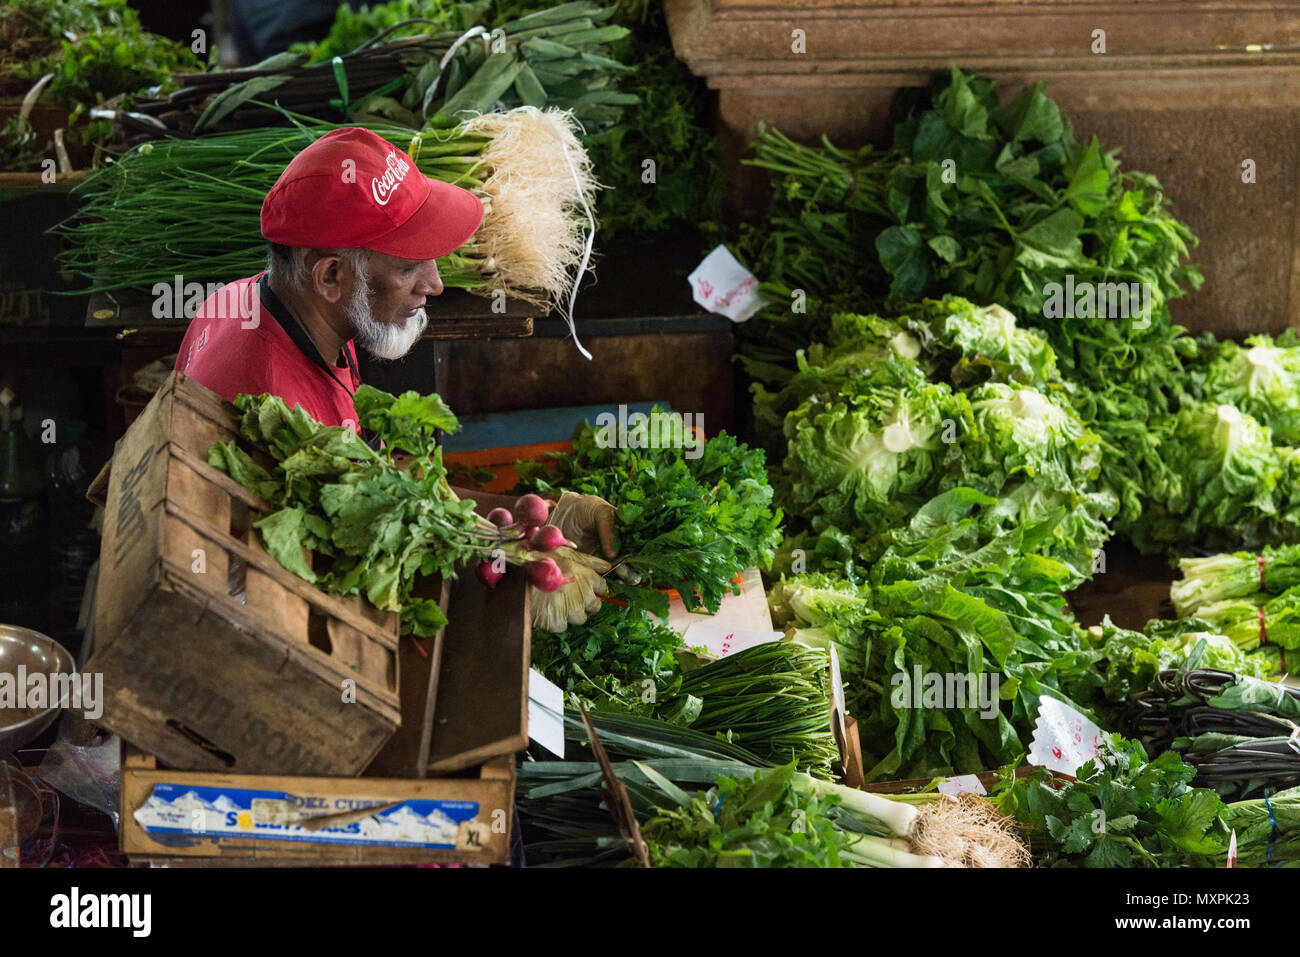 A stall holder wearing gloves laying out produce in the fruit and vegetable market, Port Louis, Mauritius - Stock Image